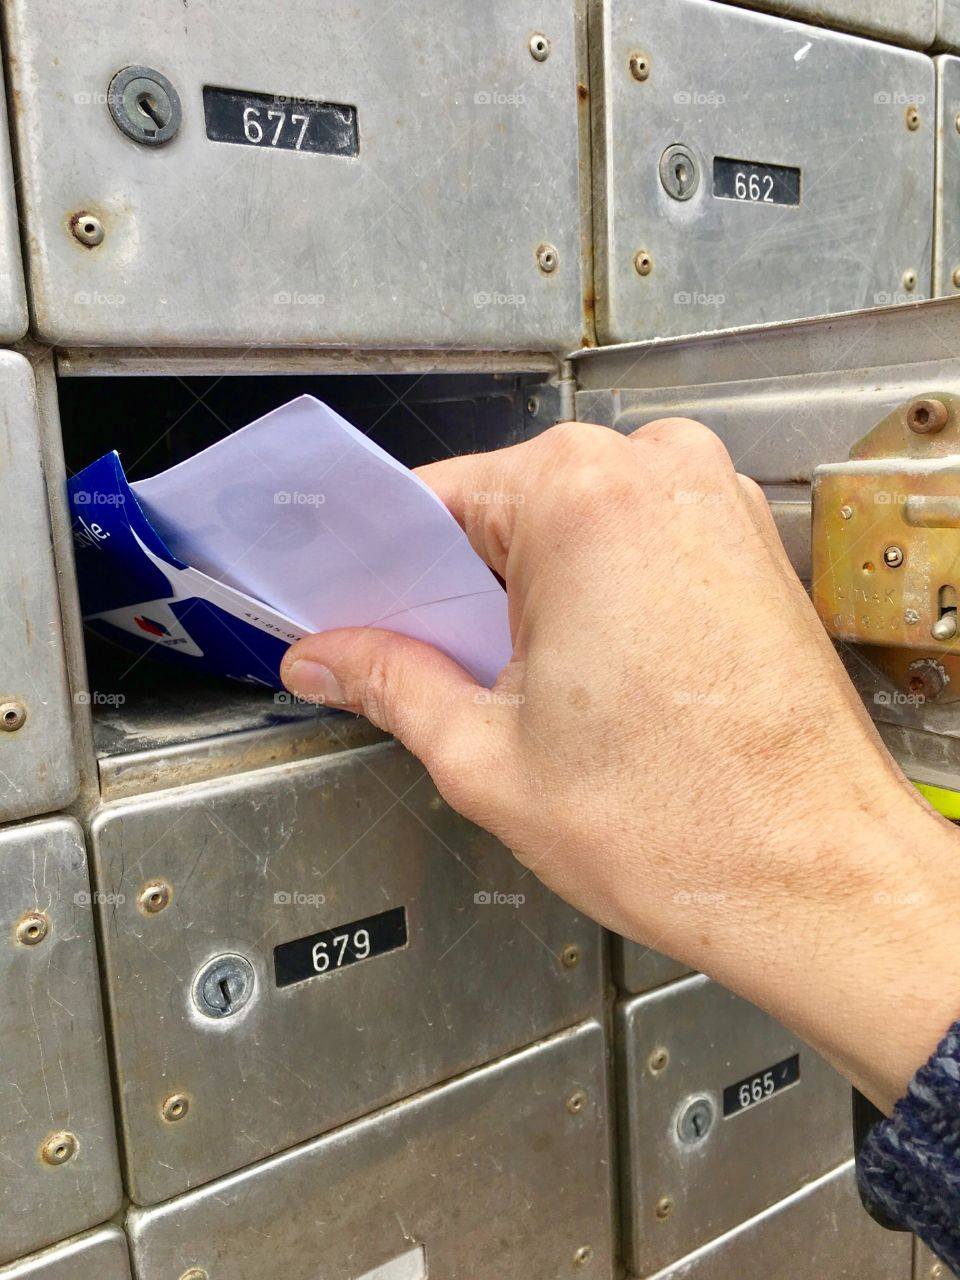 Taking out letters from the mailbox